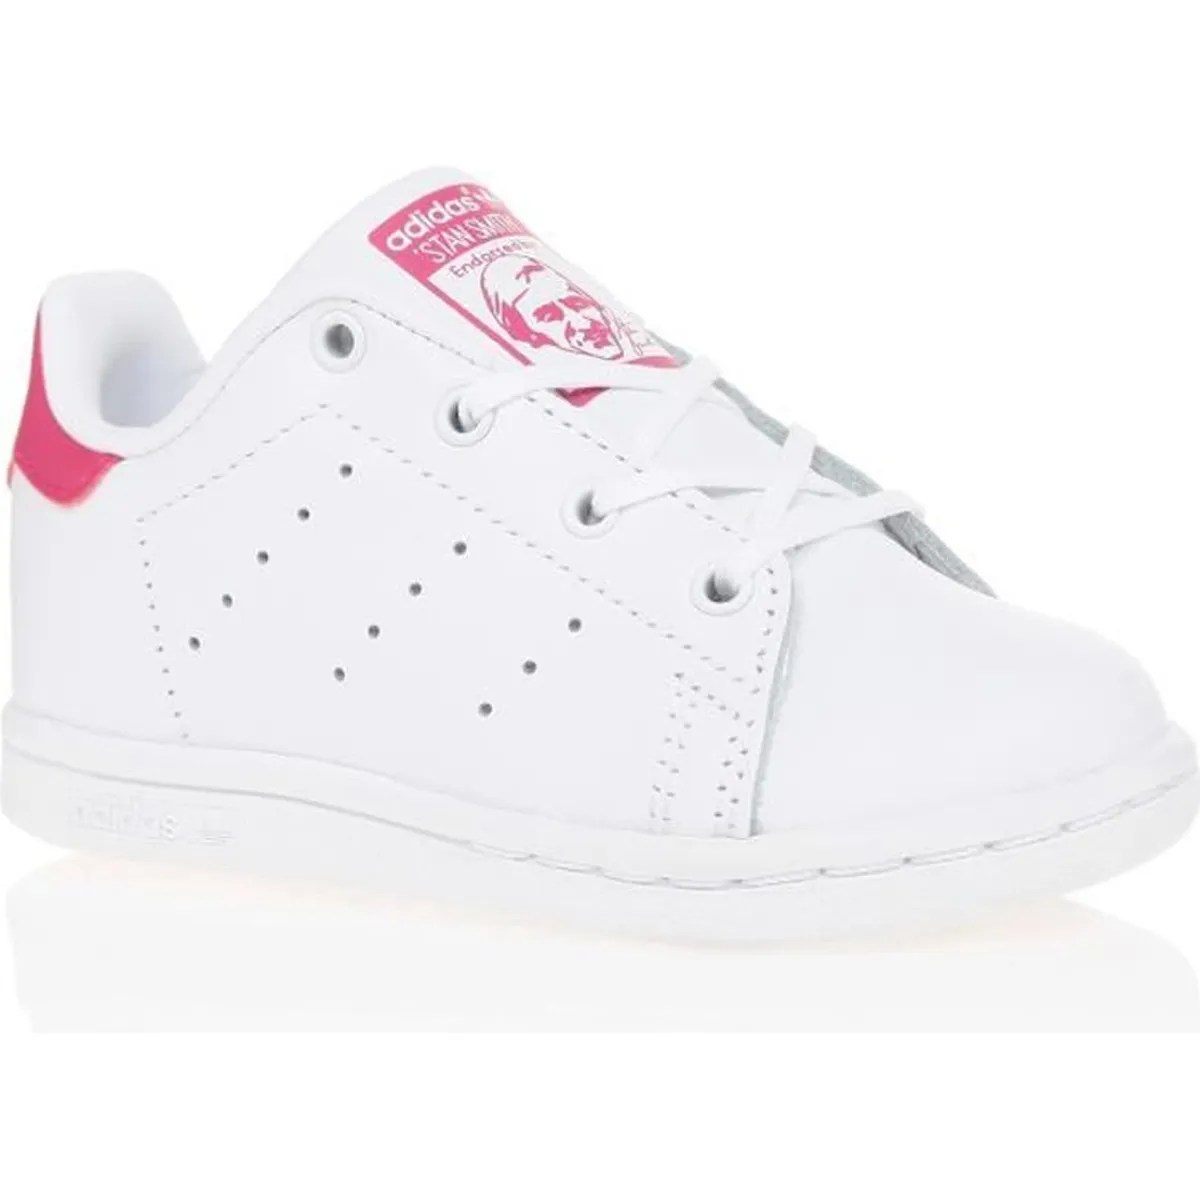 c96aac7a05663 Chaussure Adidas Bebe Fille Achat Vente Pas Cher